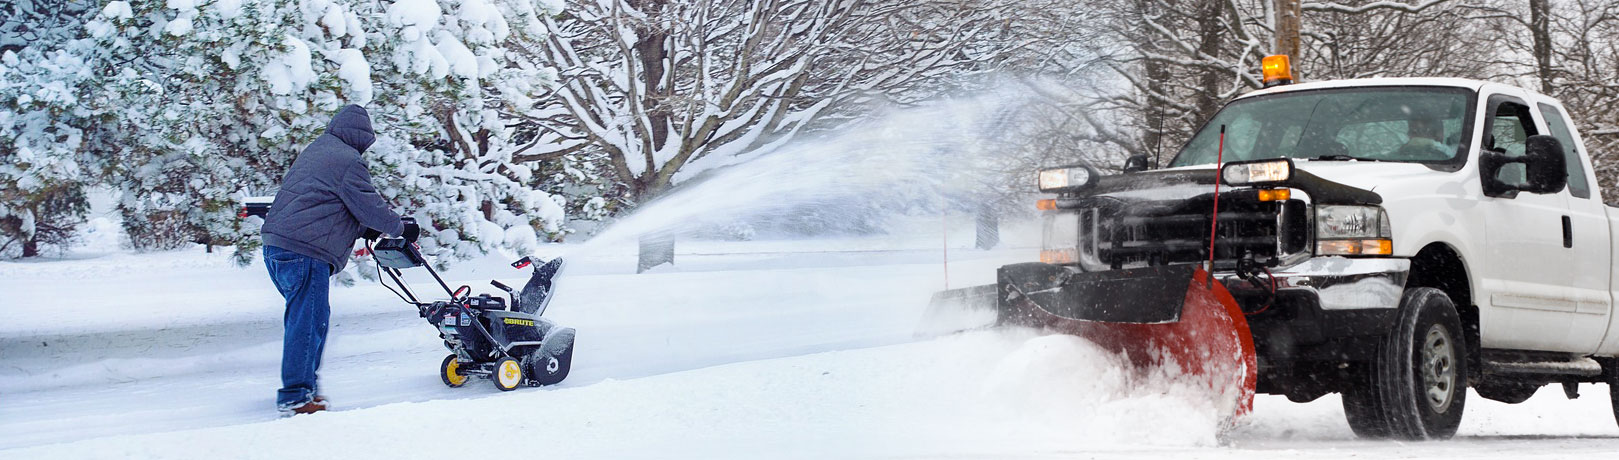 header image - snow blower and plow